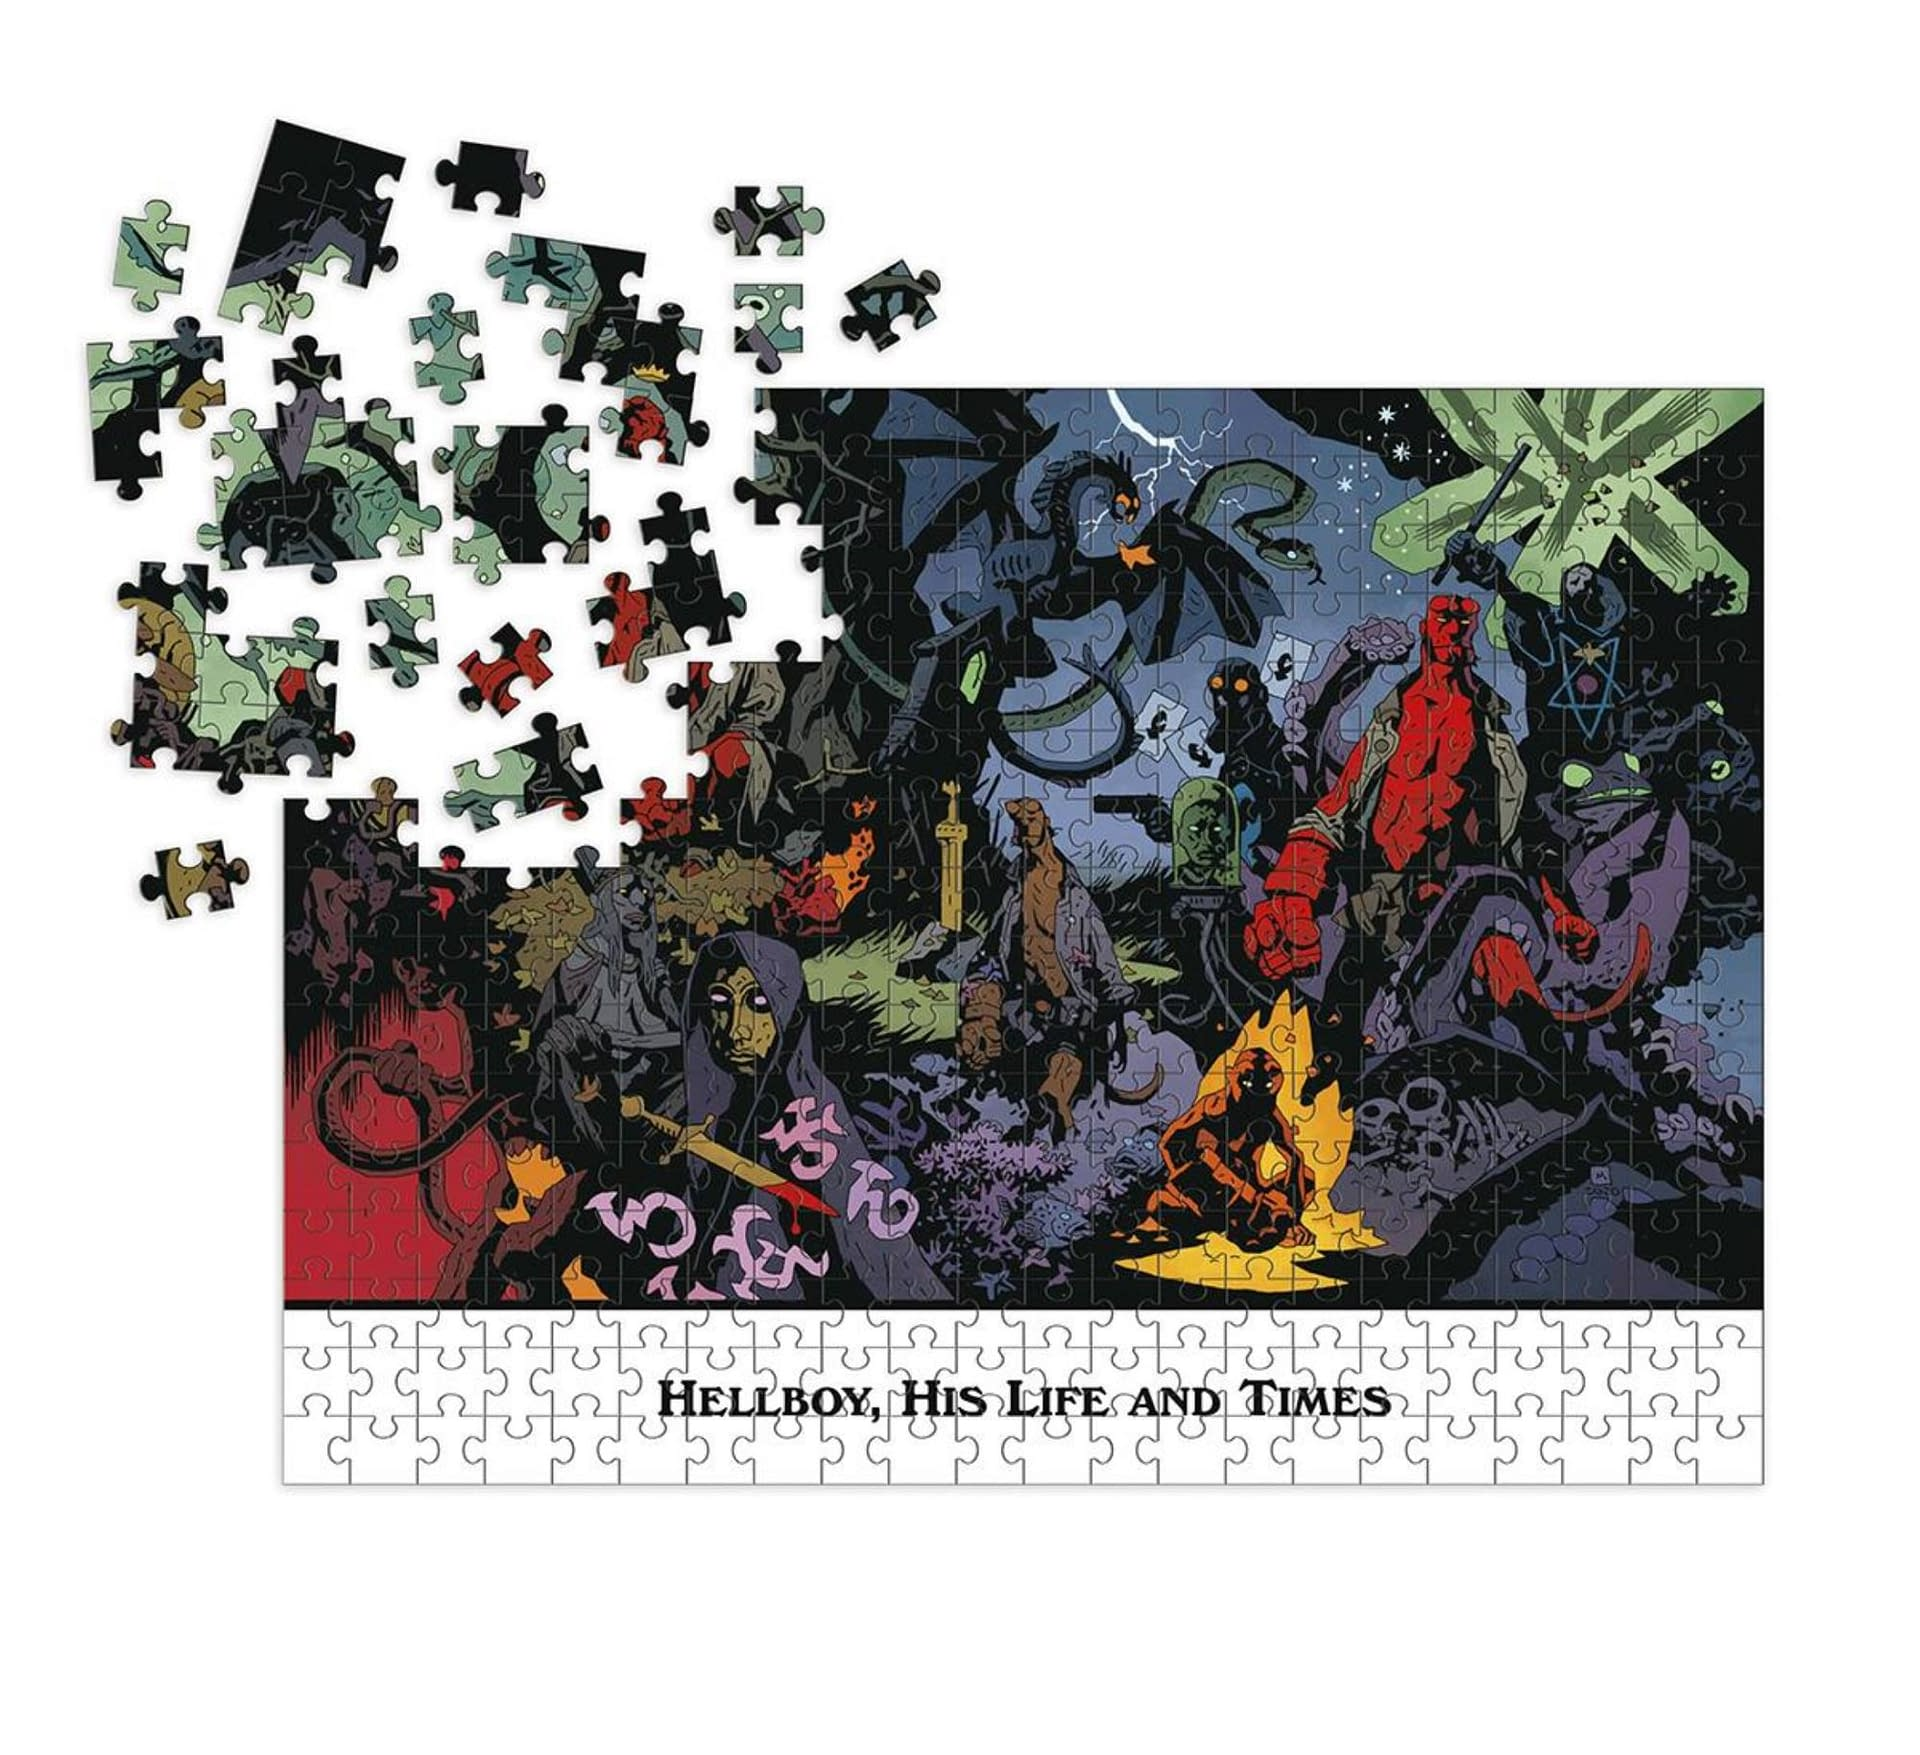 HELLBOY HIS LIFE AND TIMES PUZZLE